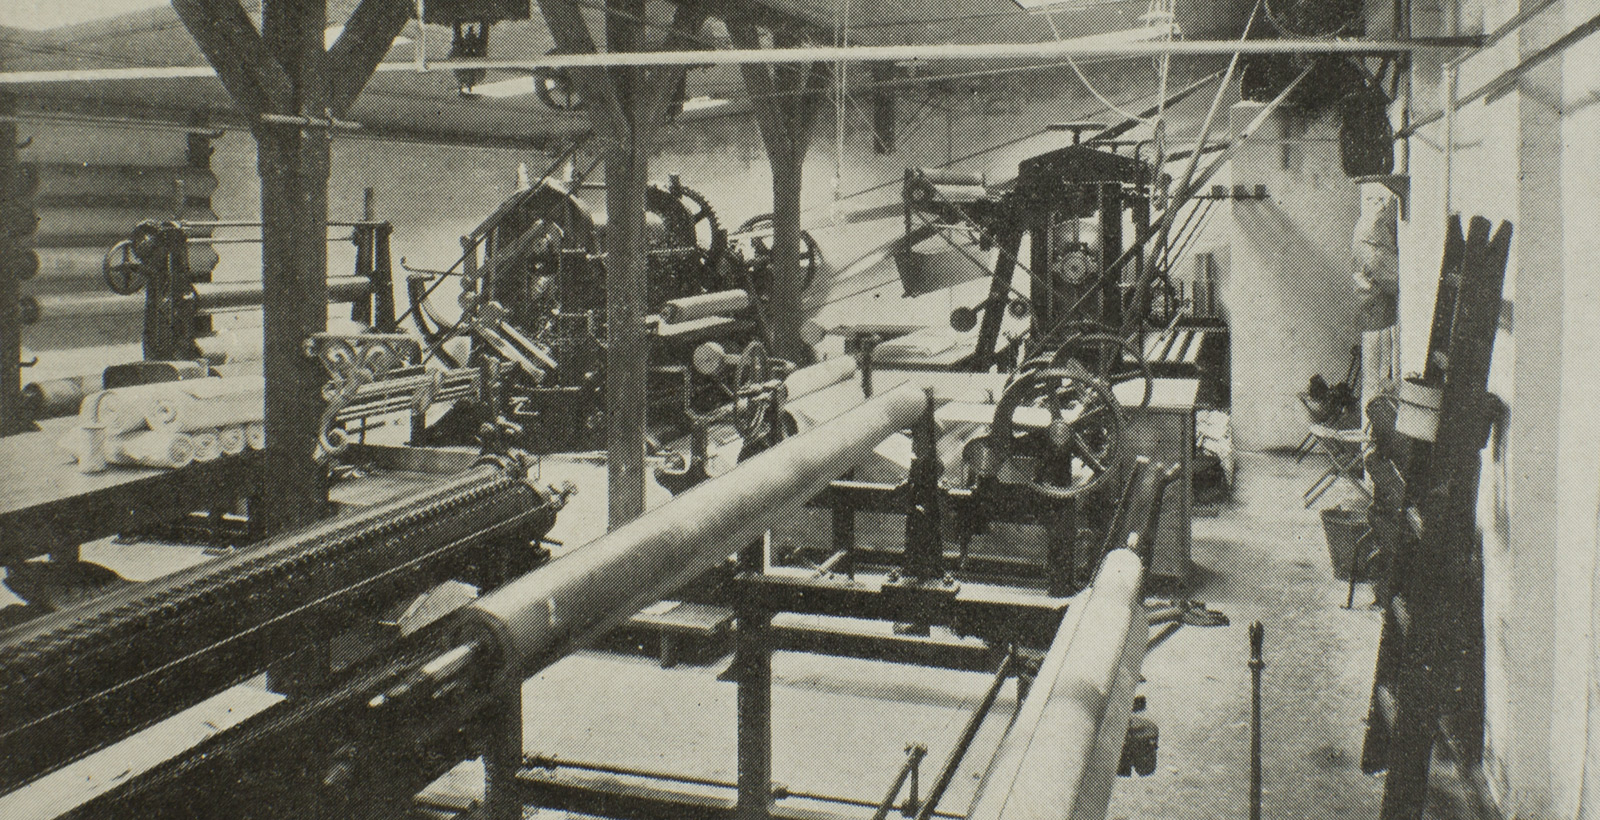 Photo: The old Geismar's weaving milli - Circa 1903